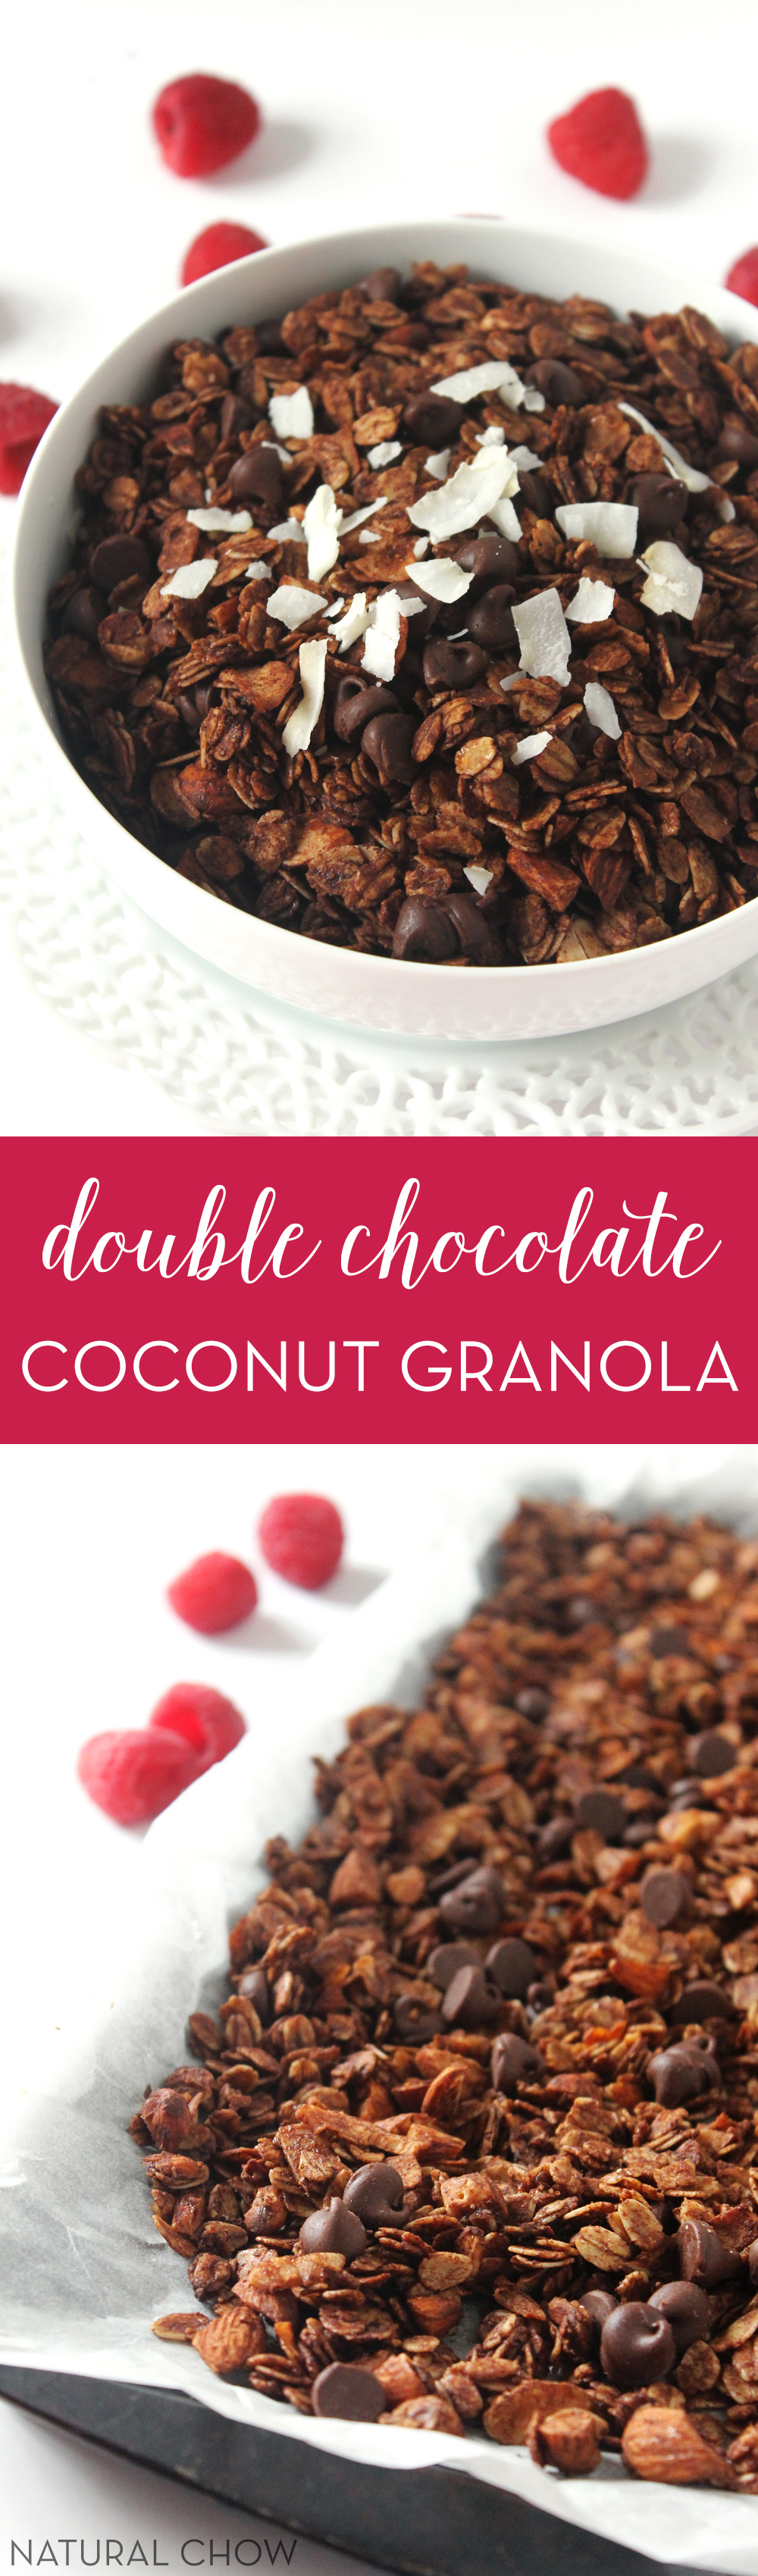 Double Chocolate Coconut Granola | Natural Chow